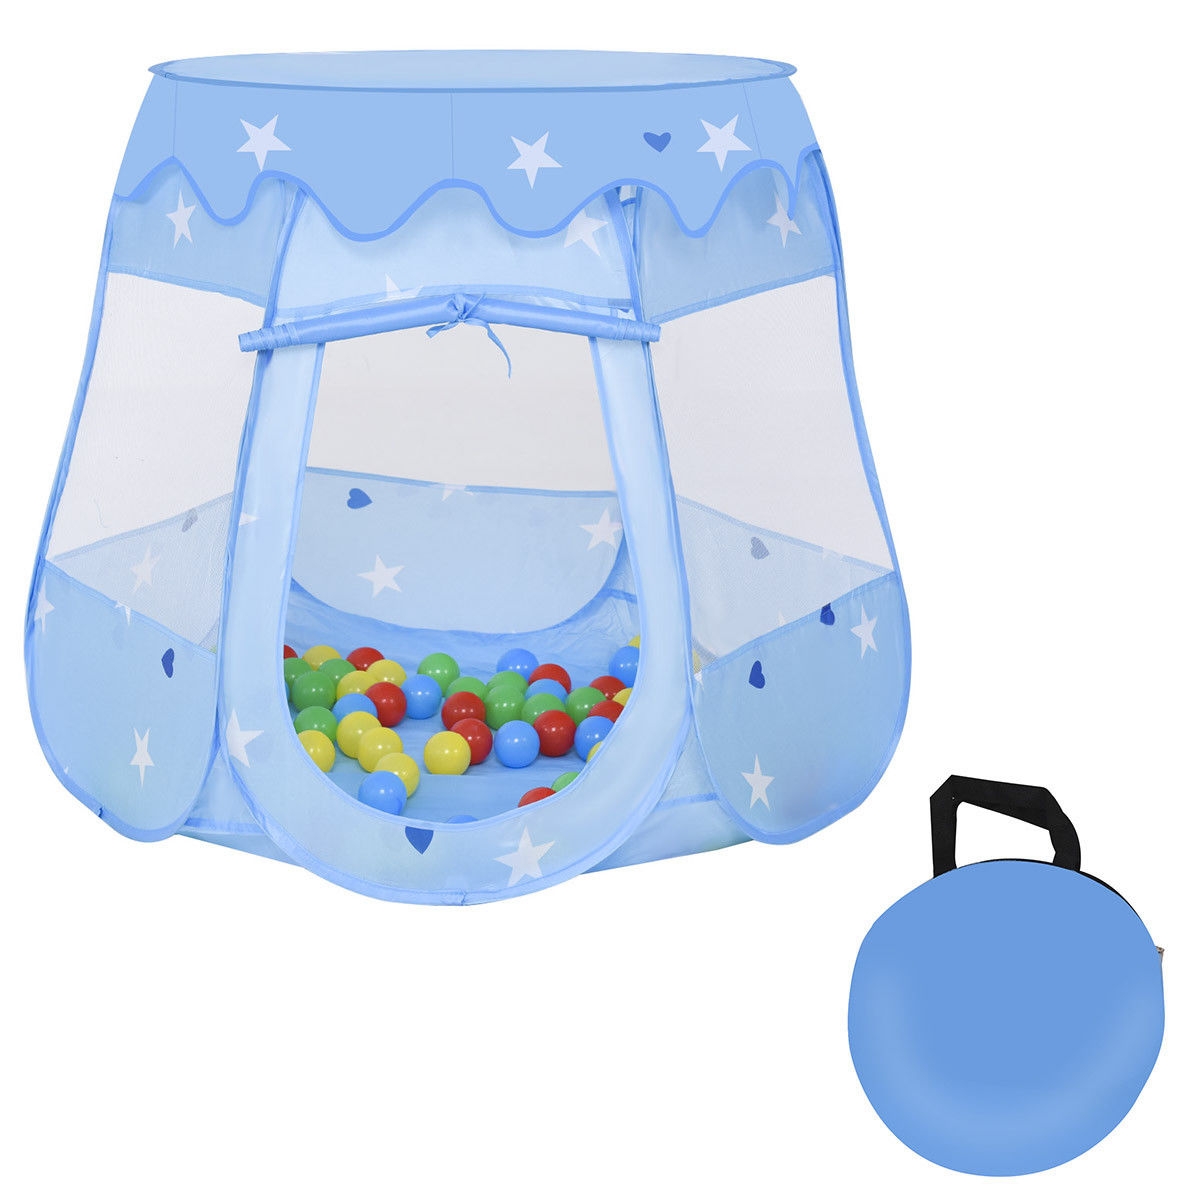 Costway Kids Princess Play Tent Playhouse Tent Toddler Toys In/Outdoor w 100 Ocean Balls